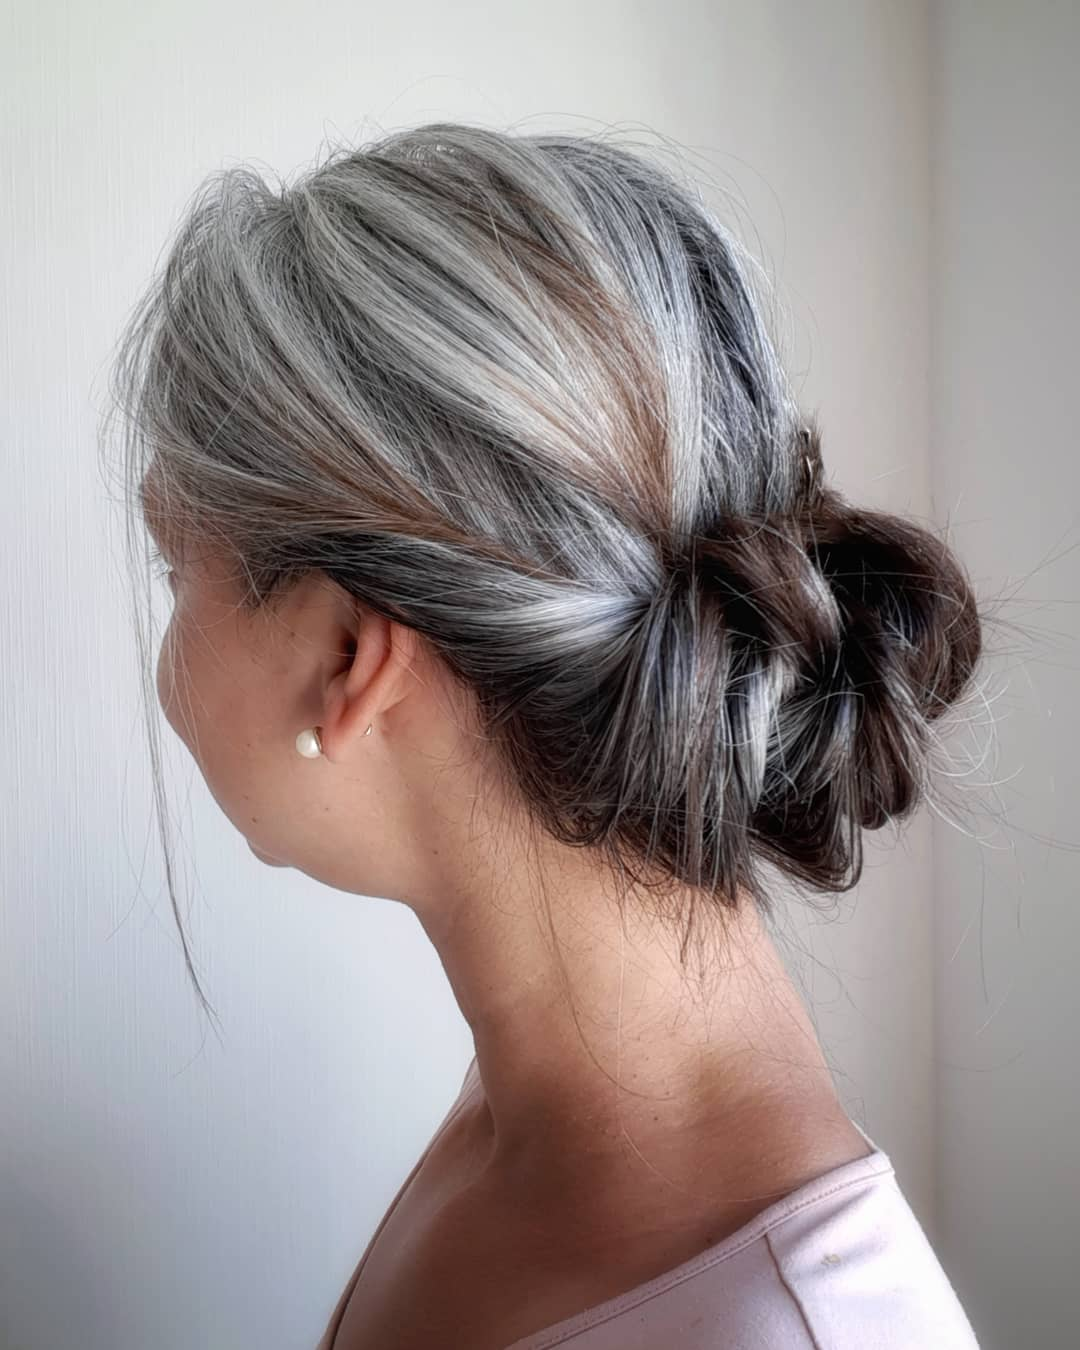 Transitioning To Gray Hair 101 New Ways To Go Gray In 2021 Hair Adviser